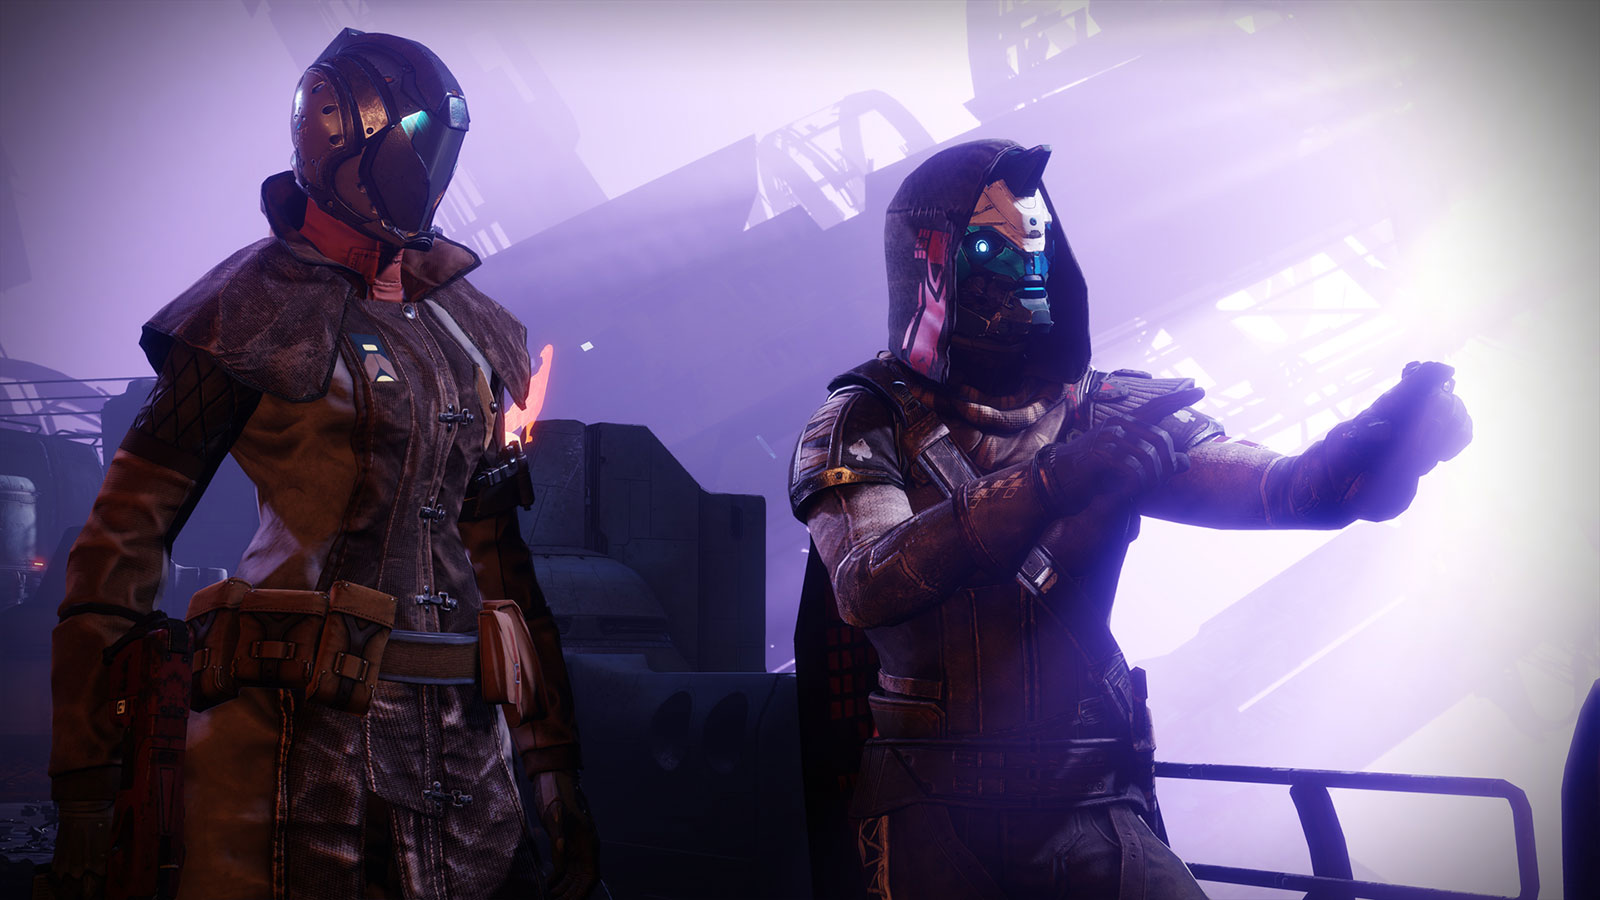 Two 3D-generated characters in futuristic masks and snug leather outfits stand in a brightly backlit industrial scene.